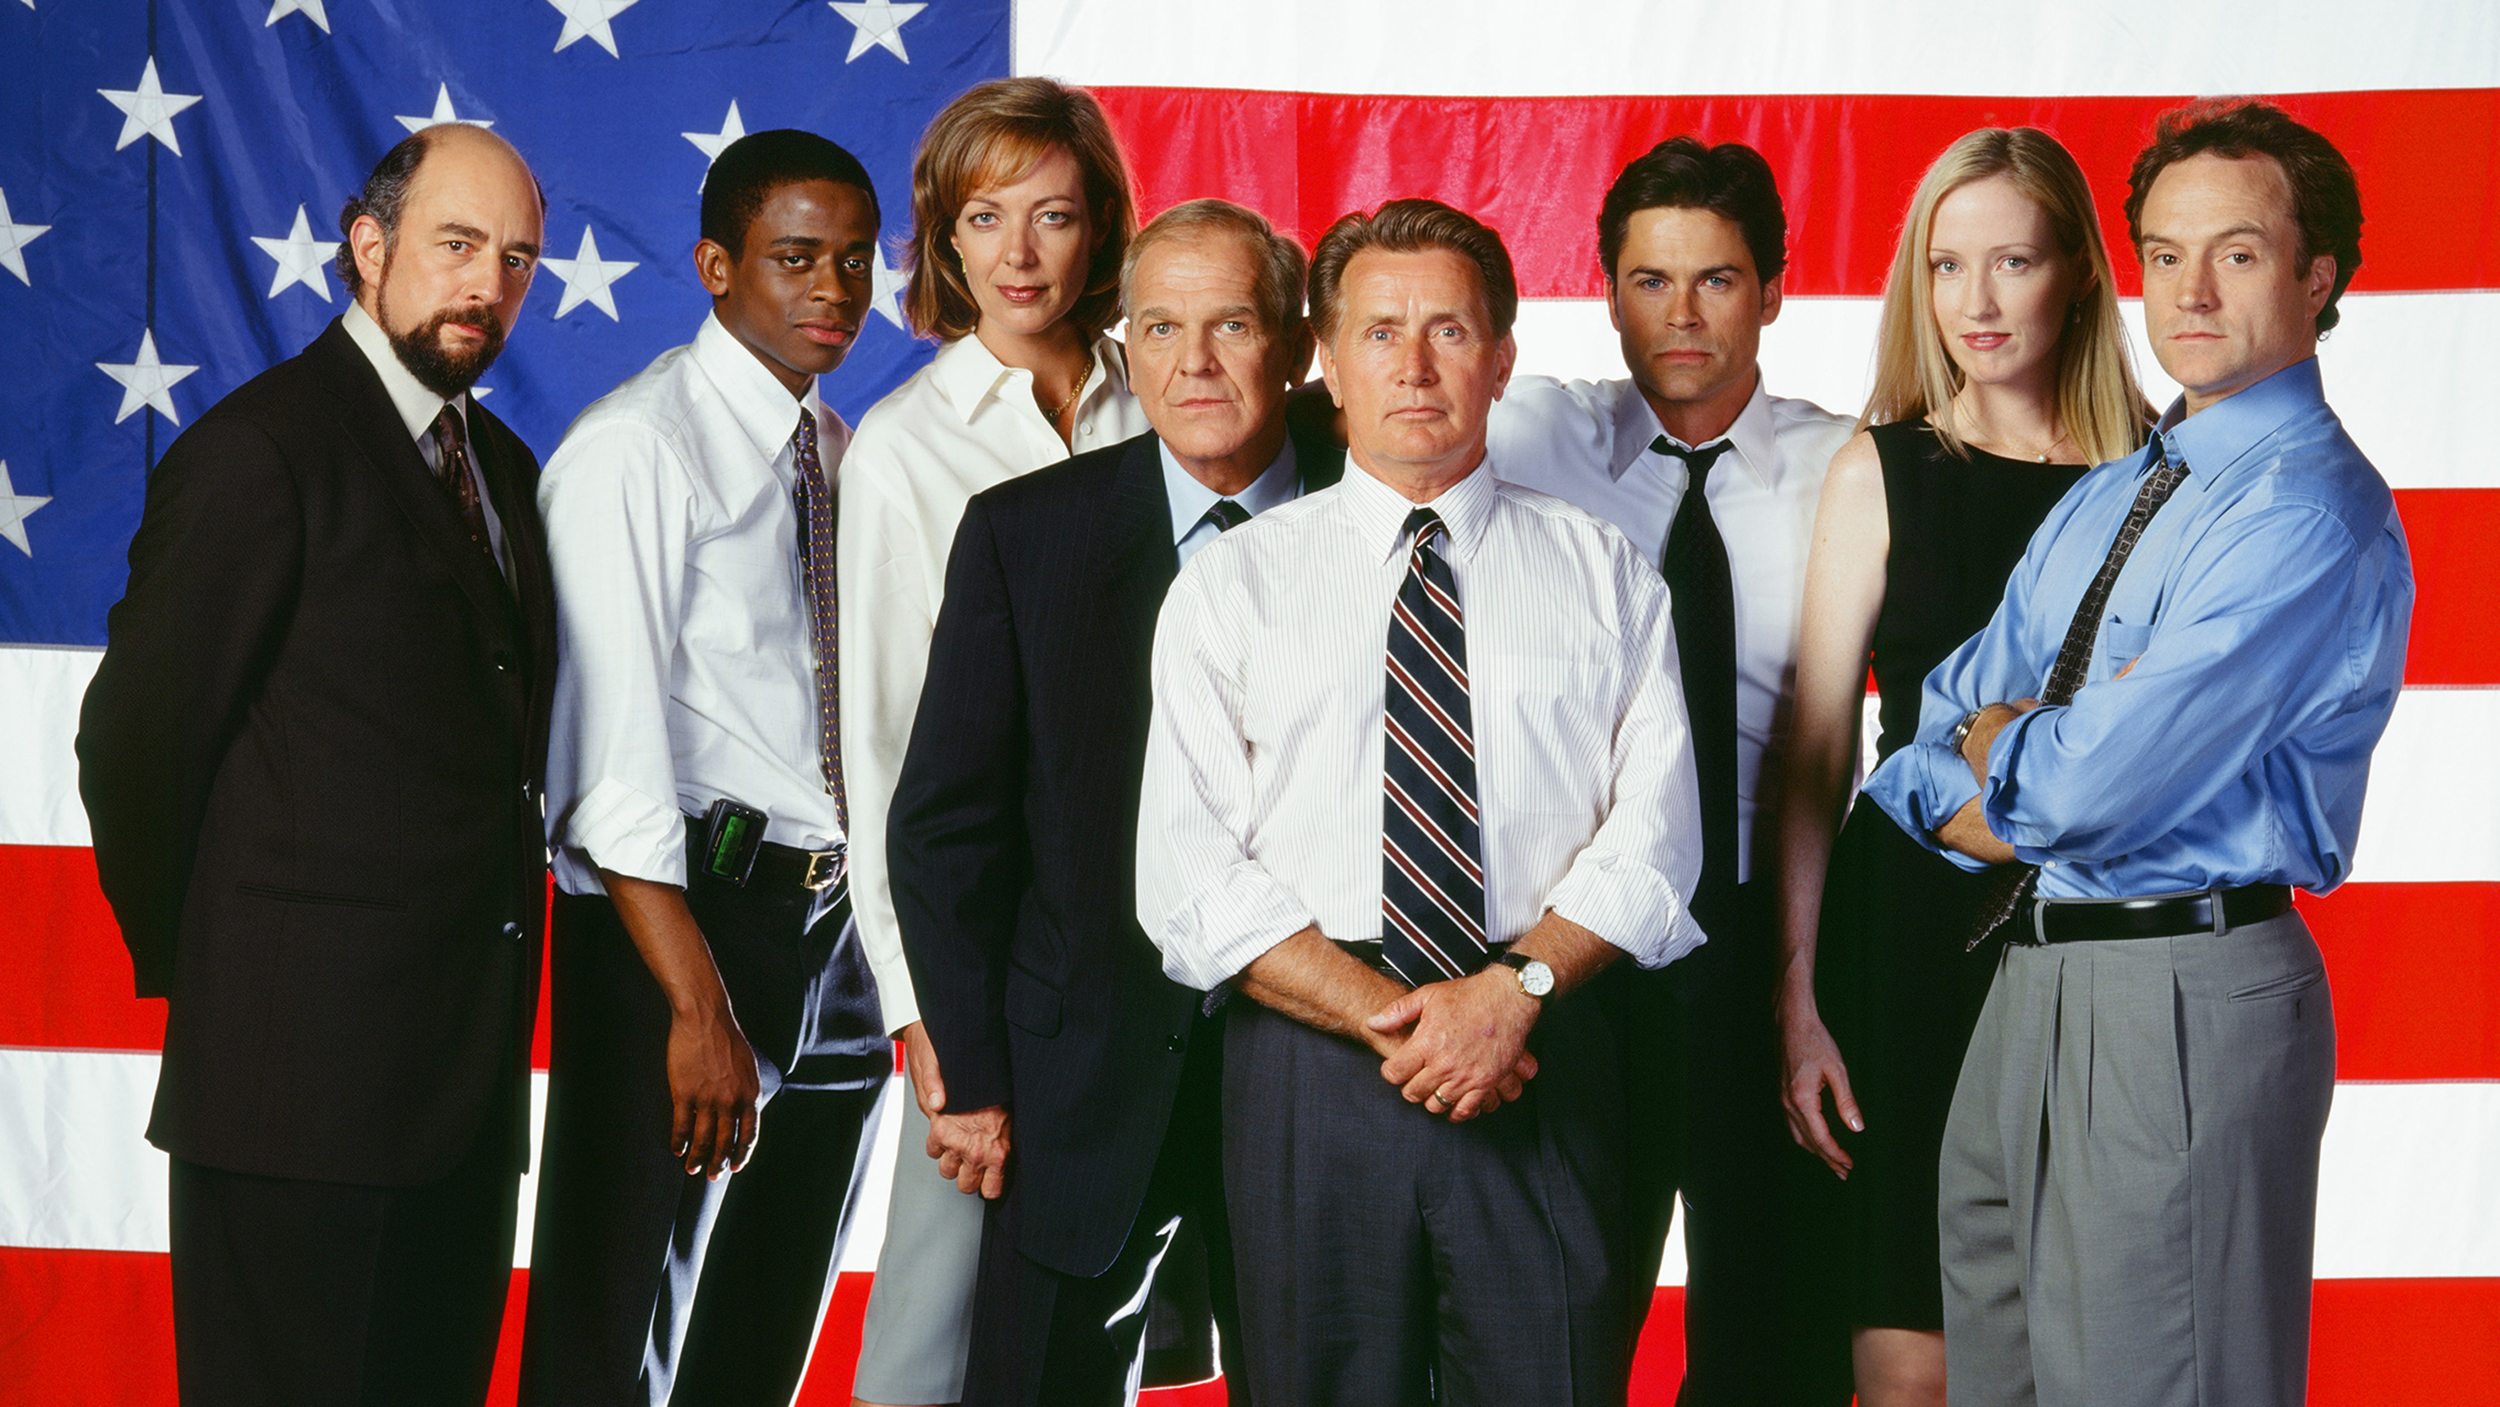 39 west wing 39 cast reunites reveals who president bartlet would endorse in 2016. Black Bedroom Furniture Sets. Home Design Ideas